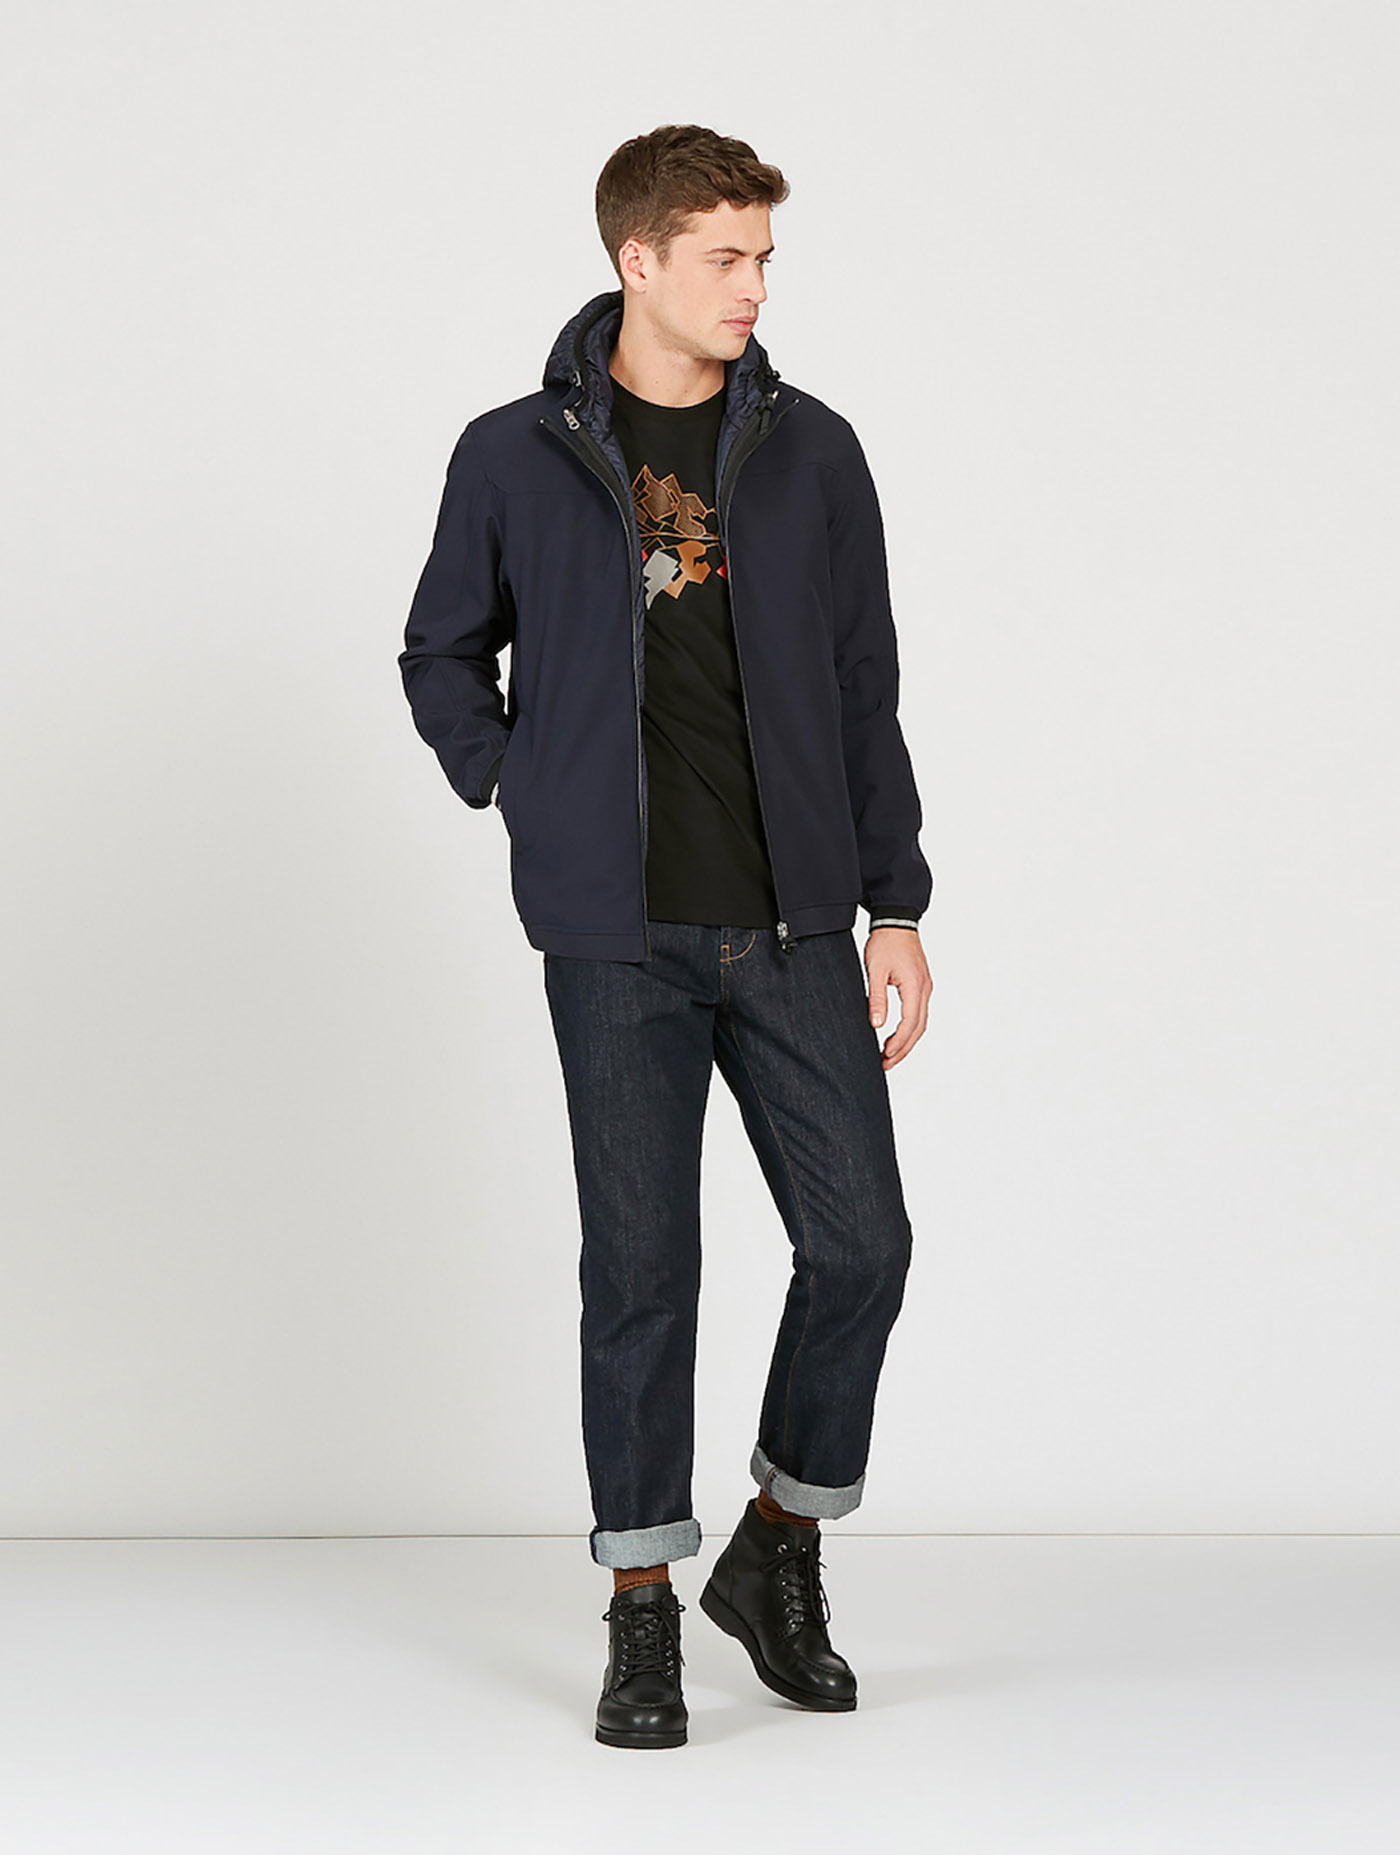 buy online d9ffd 44537 GLENTON | 3-in-1 Softshell-Jacke Herren Dark navy ...